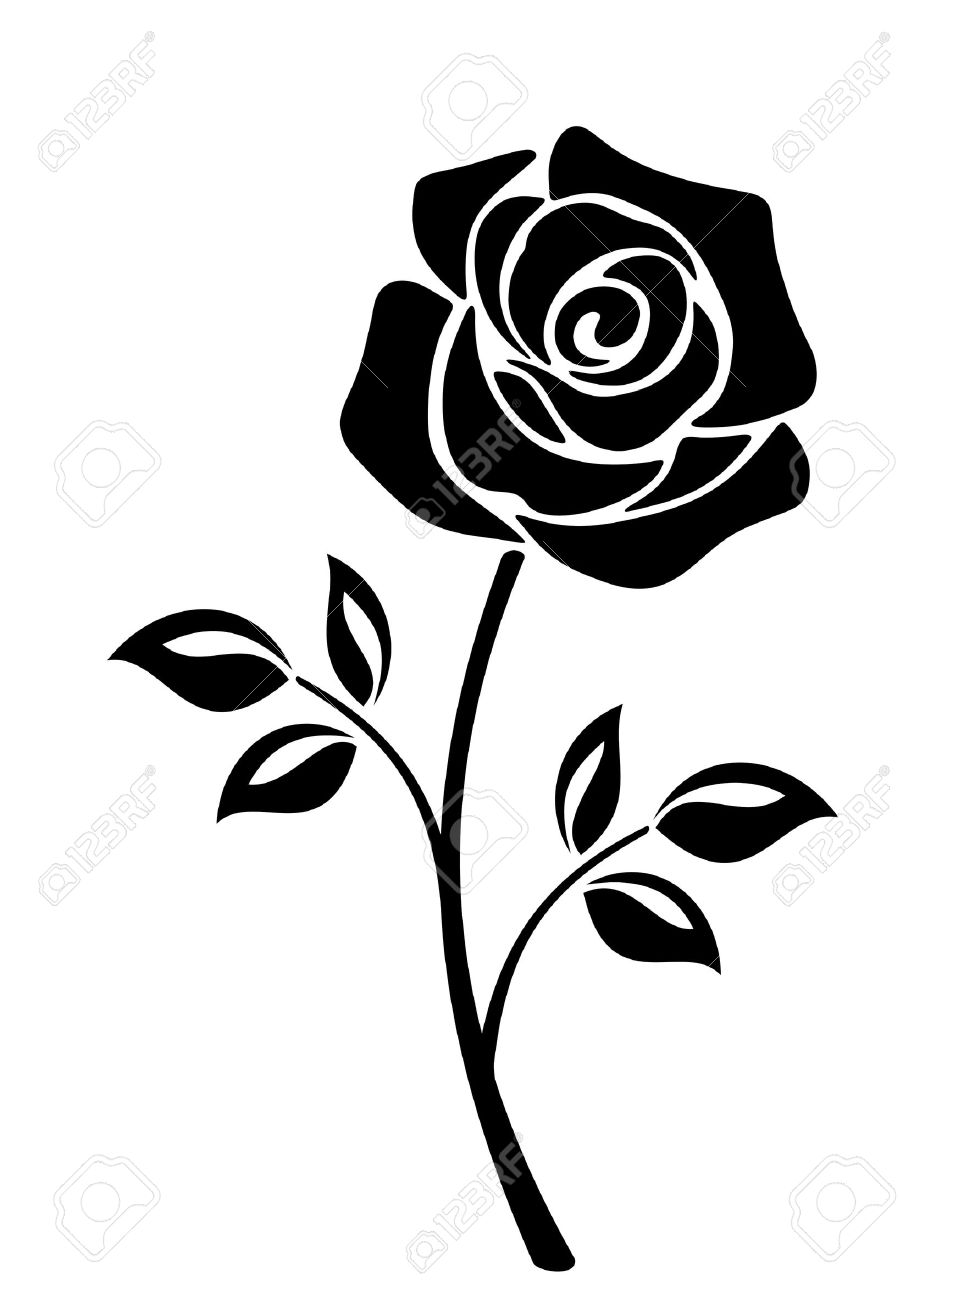 Black and white images of rose flower animaxwallpaper lovely rose flower images black and white mightylinksfo